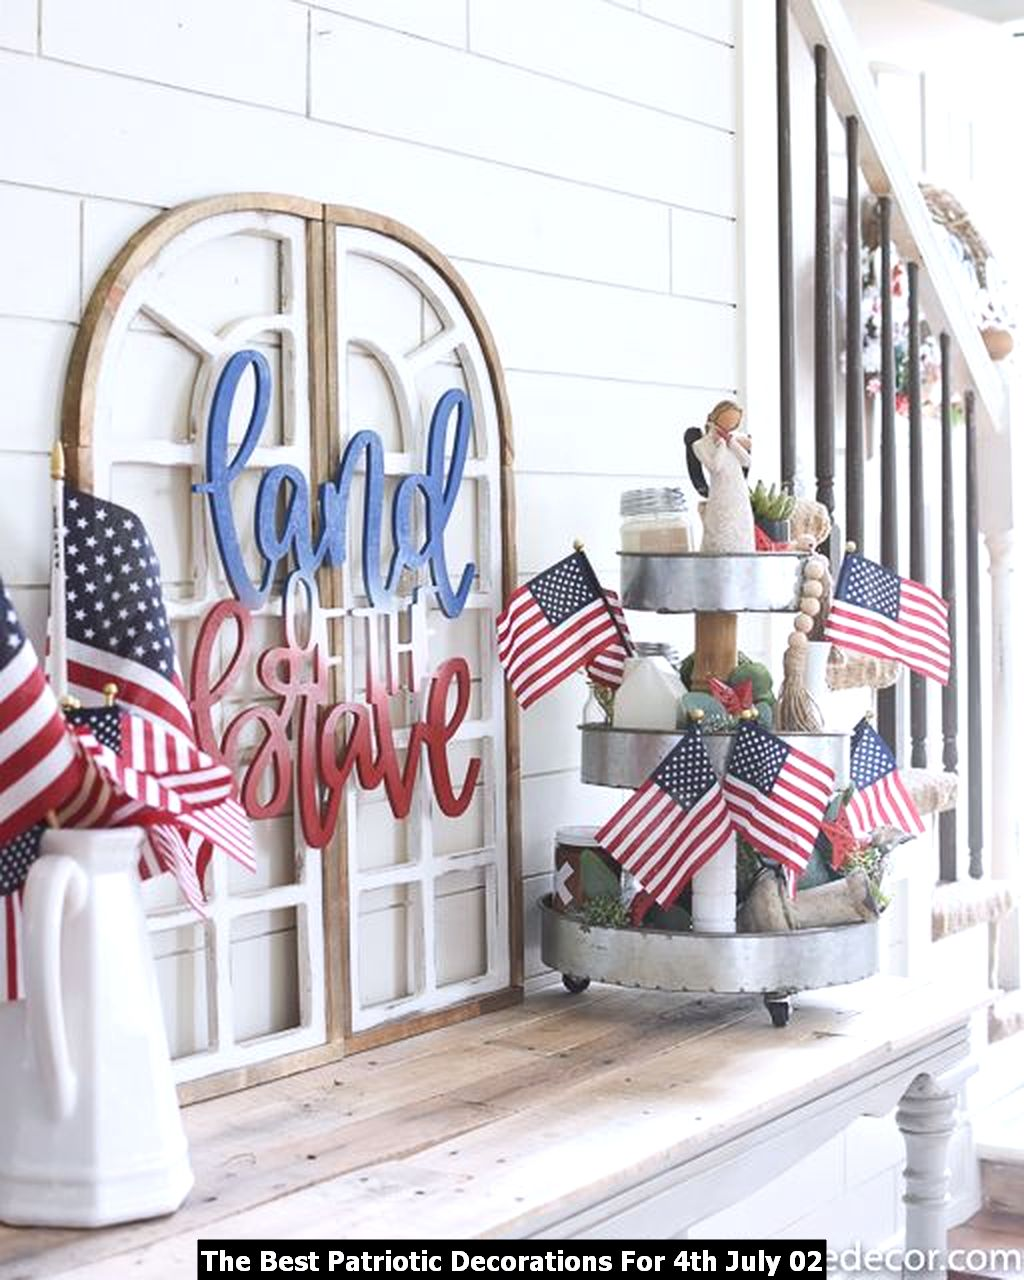 The Best Patriotic Decorations For 4th July 02